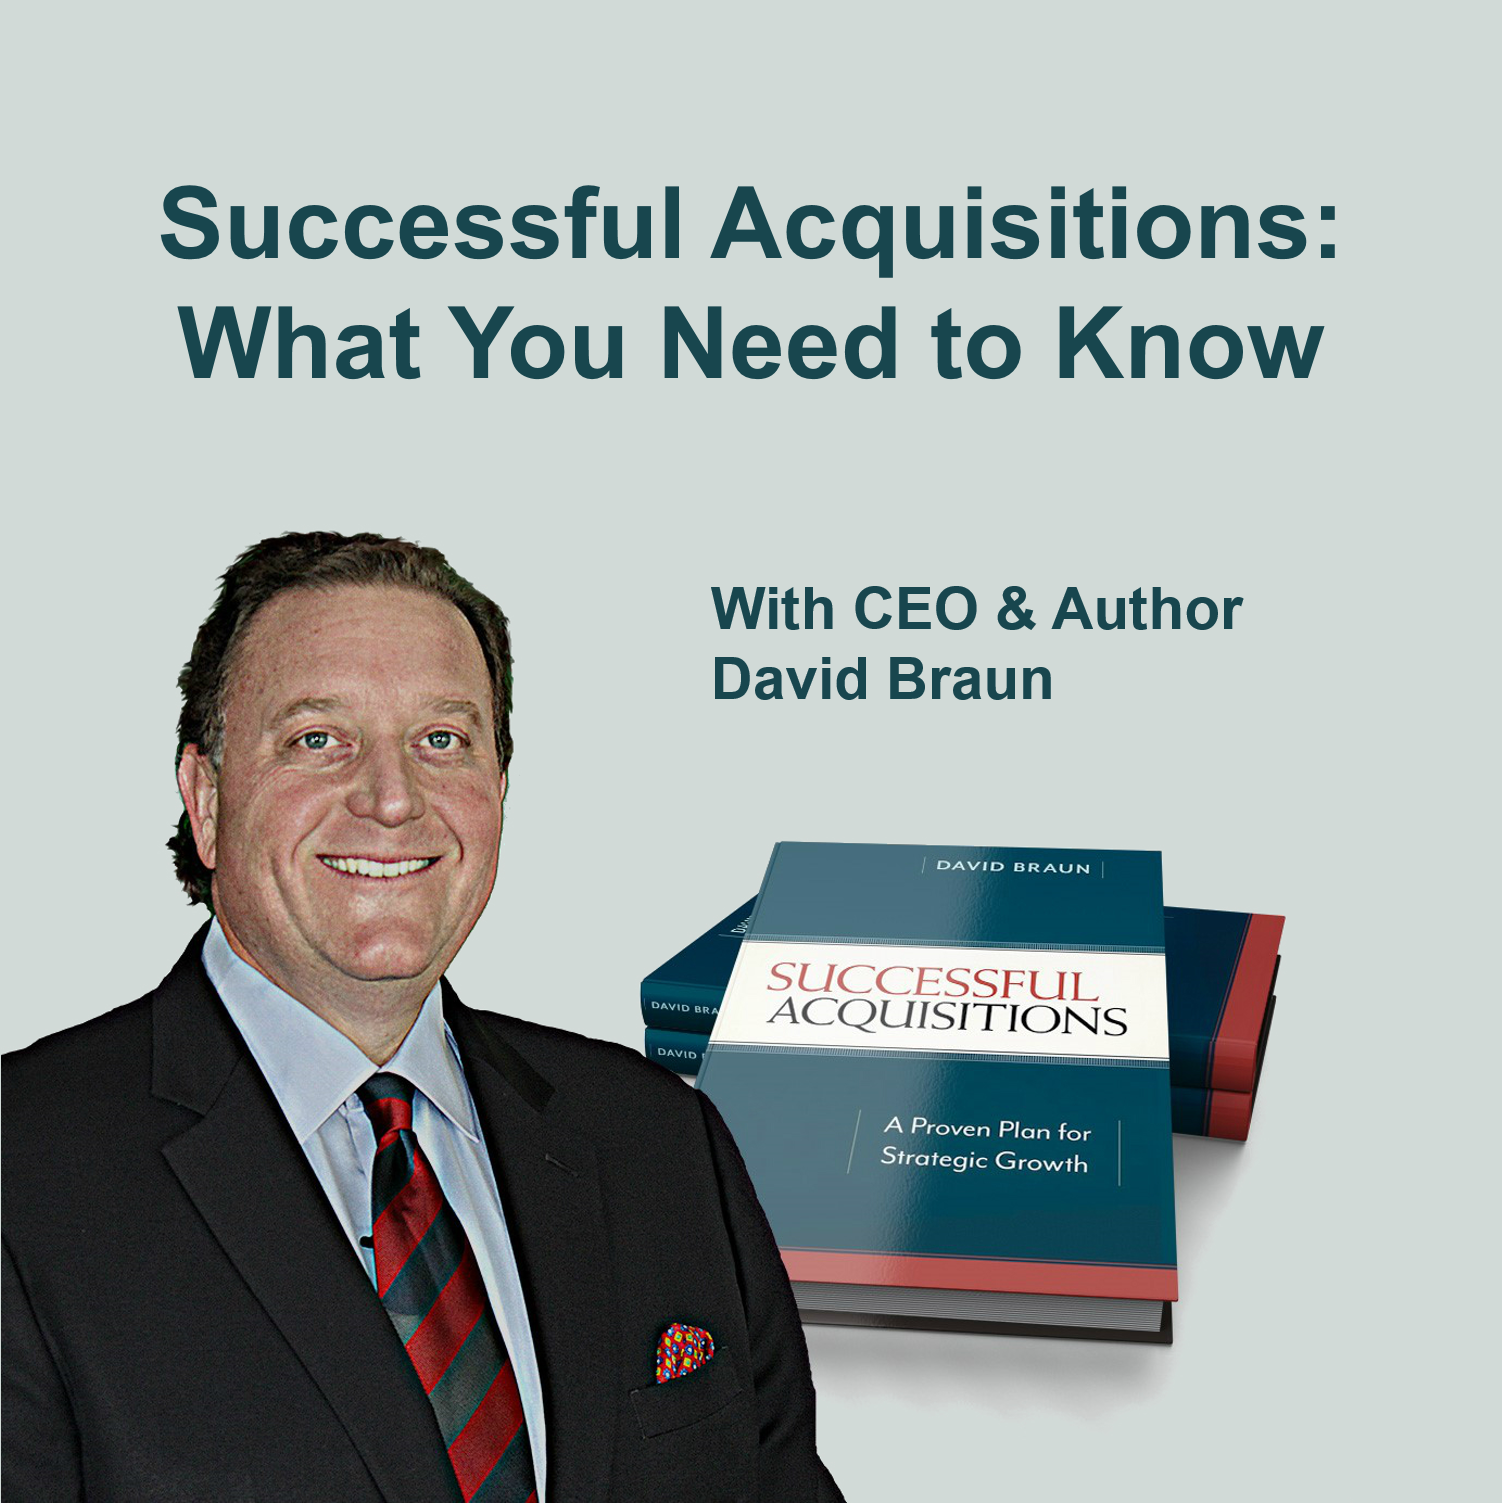 Successful Acquisitions: What You Need to Know